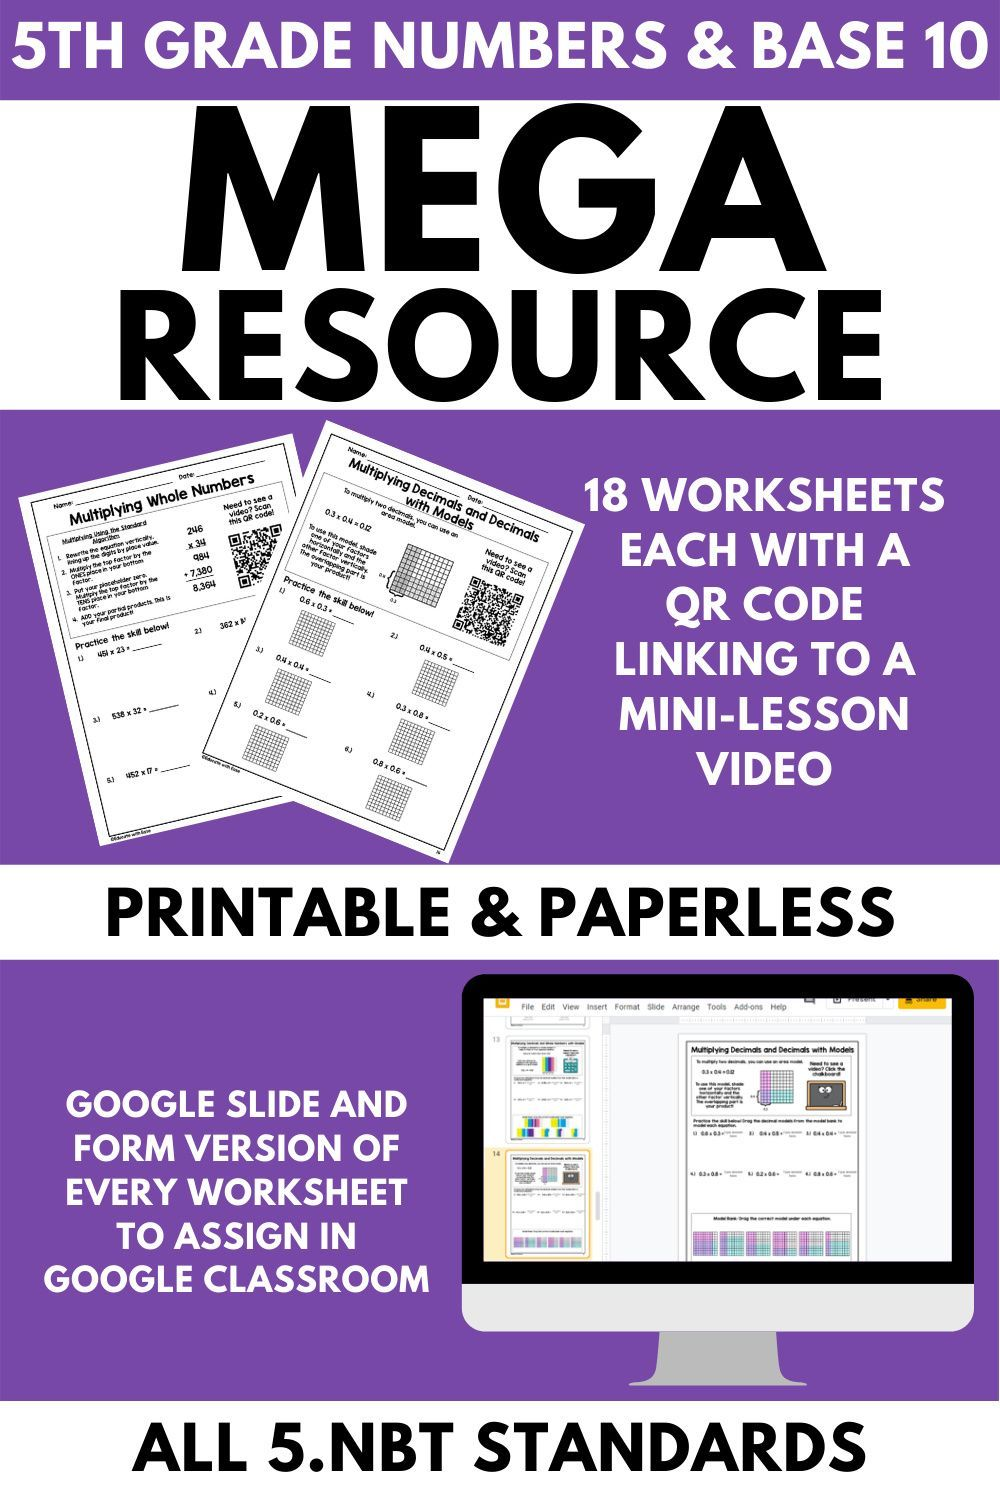 medium resolution of 5th Grade Numbers and Base 10 MEGA Resource   Google classroom resources